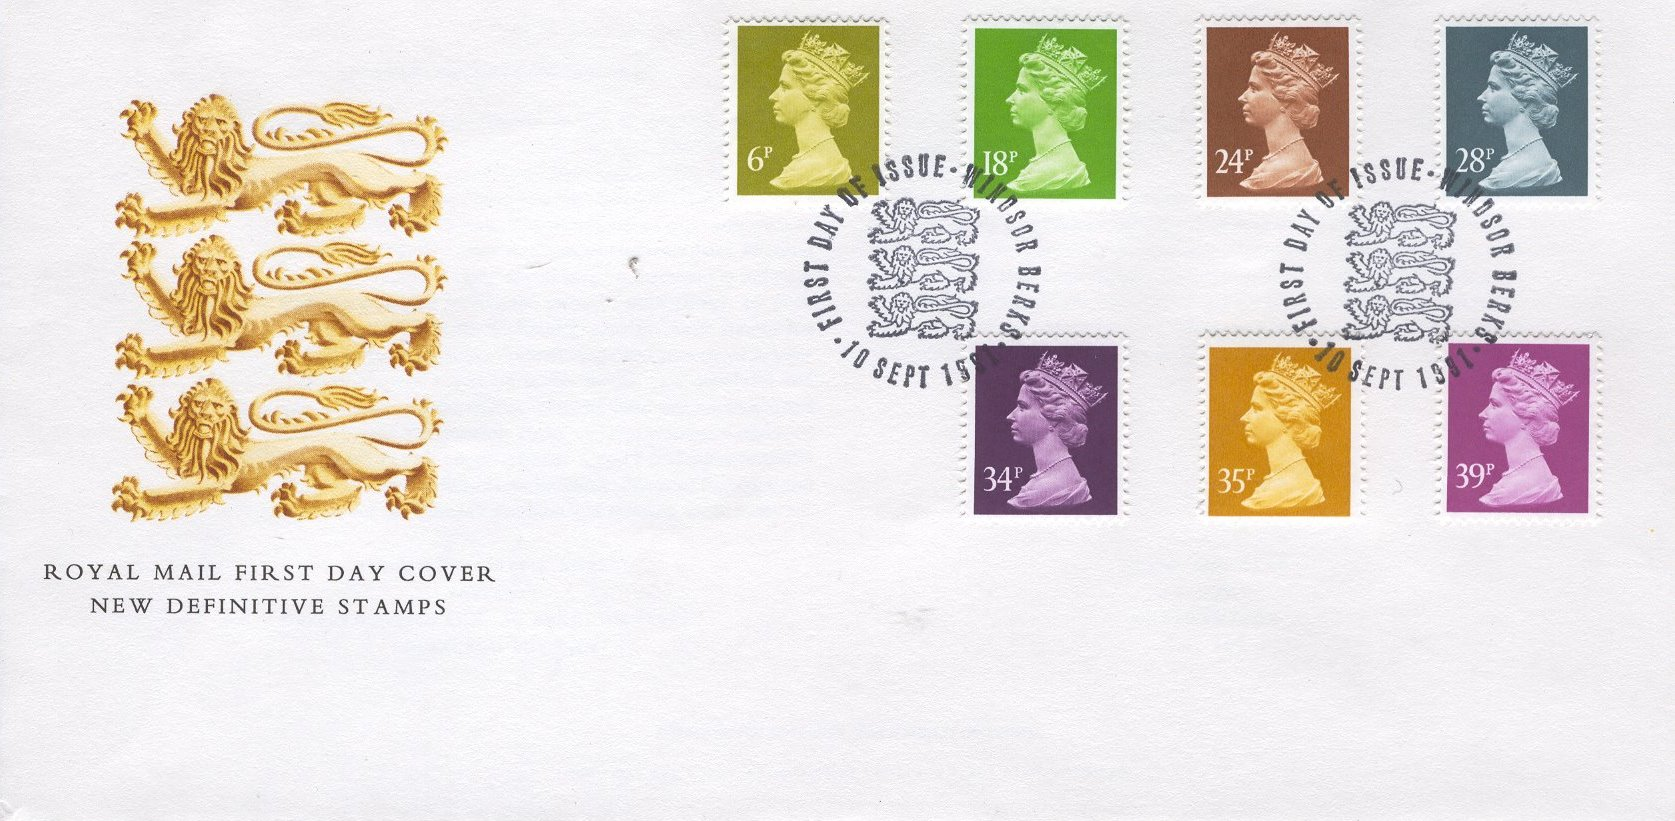 1991 GB - FDC - 7 x Changed Definitives 6p to 39p (Unaddressed)